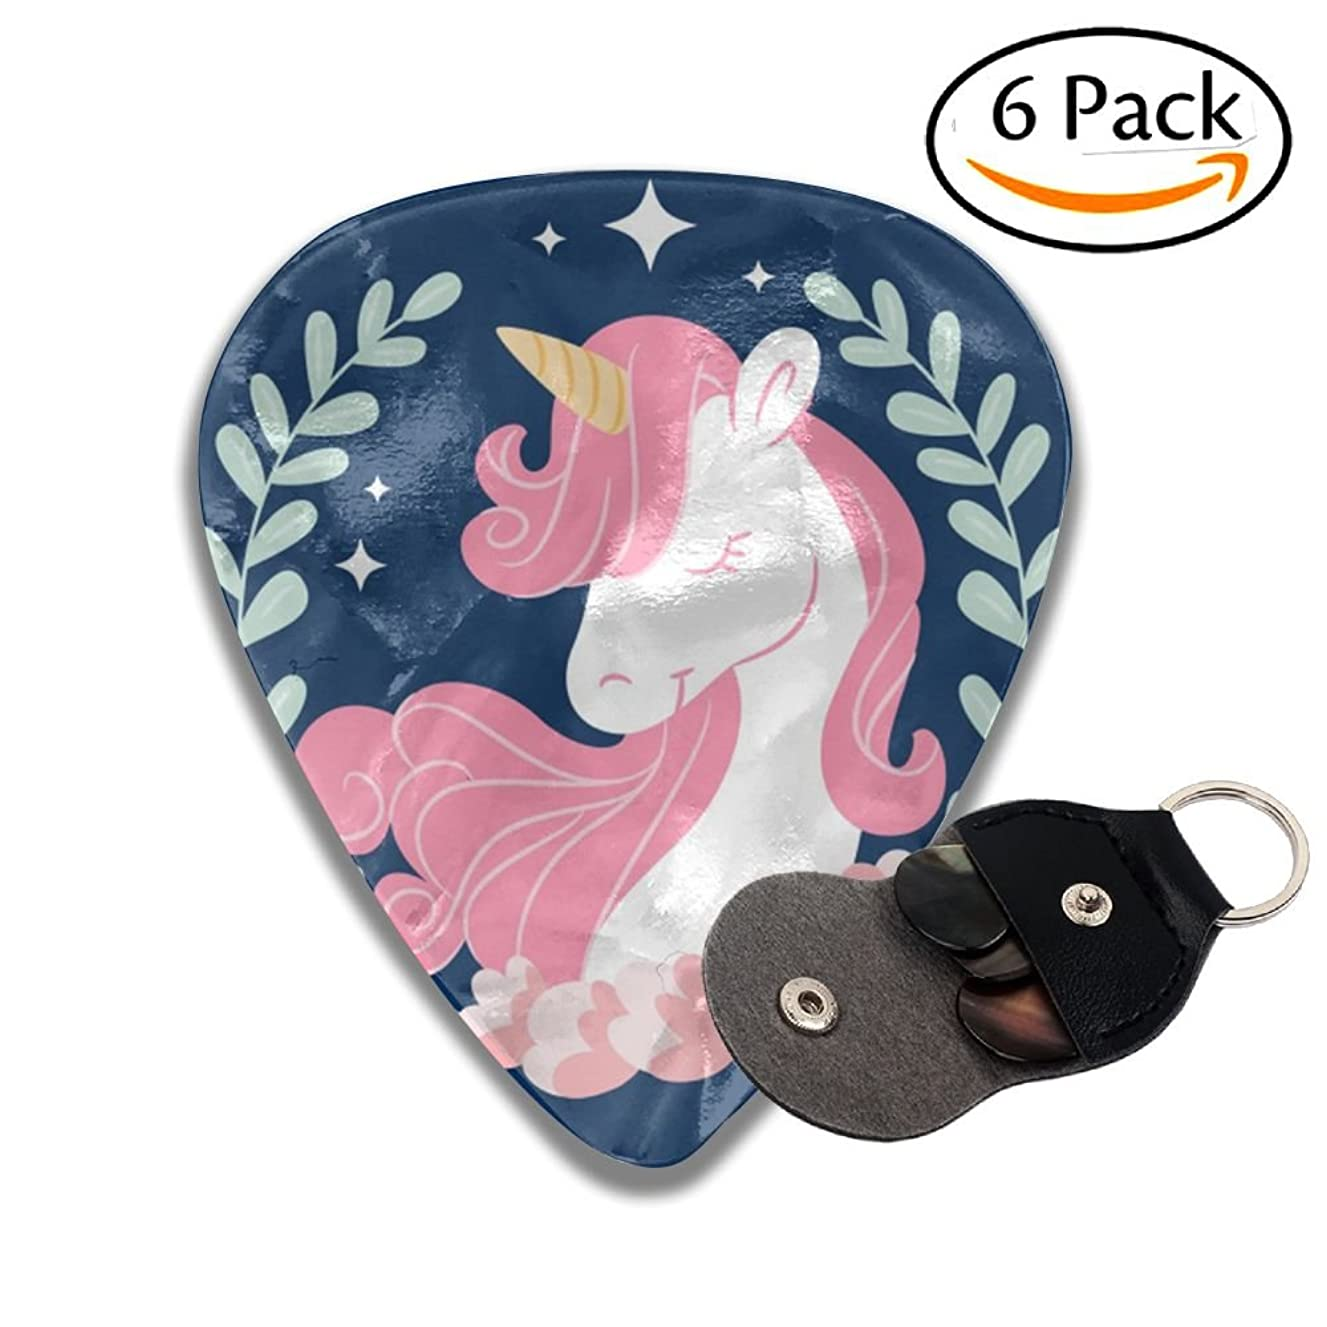 Pink Unicorn Celluloid Guitar Picks 6 Pack Includes Thin, Medium, Heavy & Extra Heavy Gauges